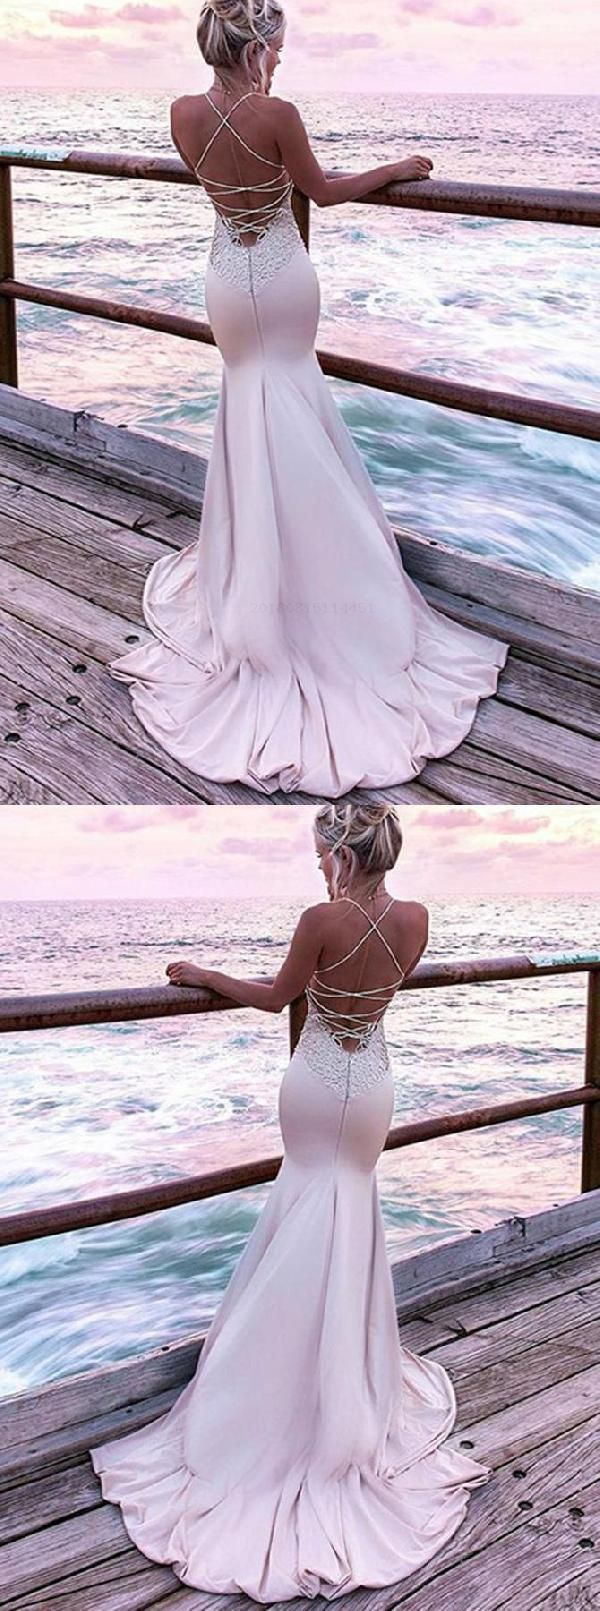 Admirable Prom Dresses With Appliques, Evening Dresses Pink, Prom Dresses 2019, Mermaid Evening Dresses